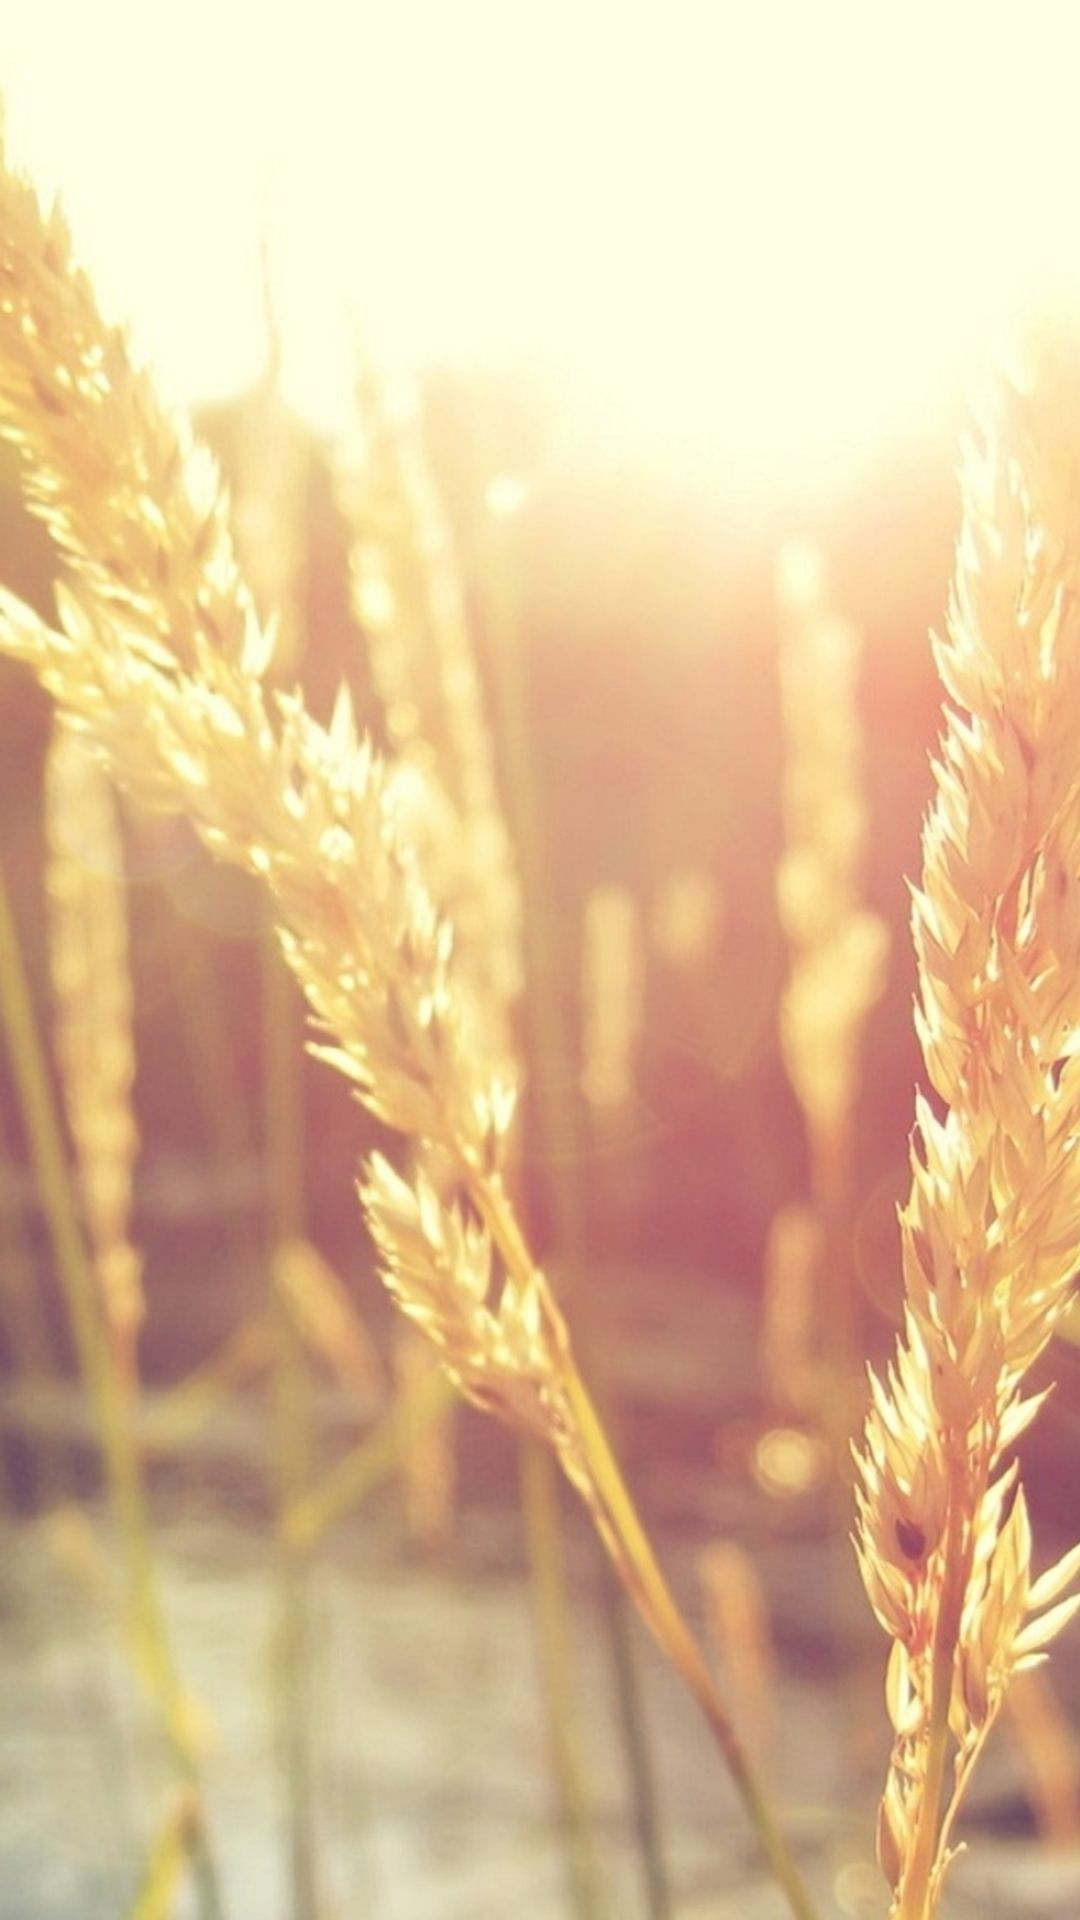 Nature Wheat Rice Sunlight Plant Iphone 6 Wallpaper Download Iphone Wallpapers Ipad Wallpaper Iphone 6 Wallpaper Cool Backgrounds For Iphone Plant Wallpaper